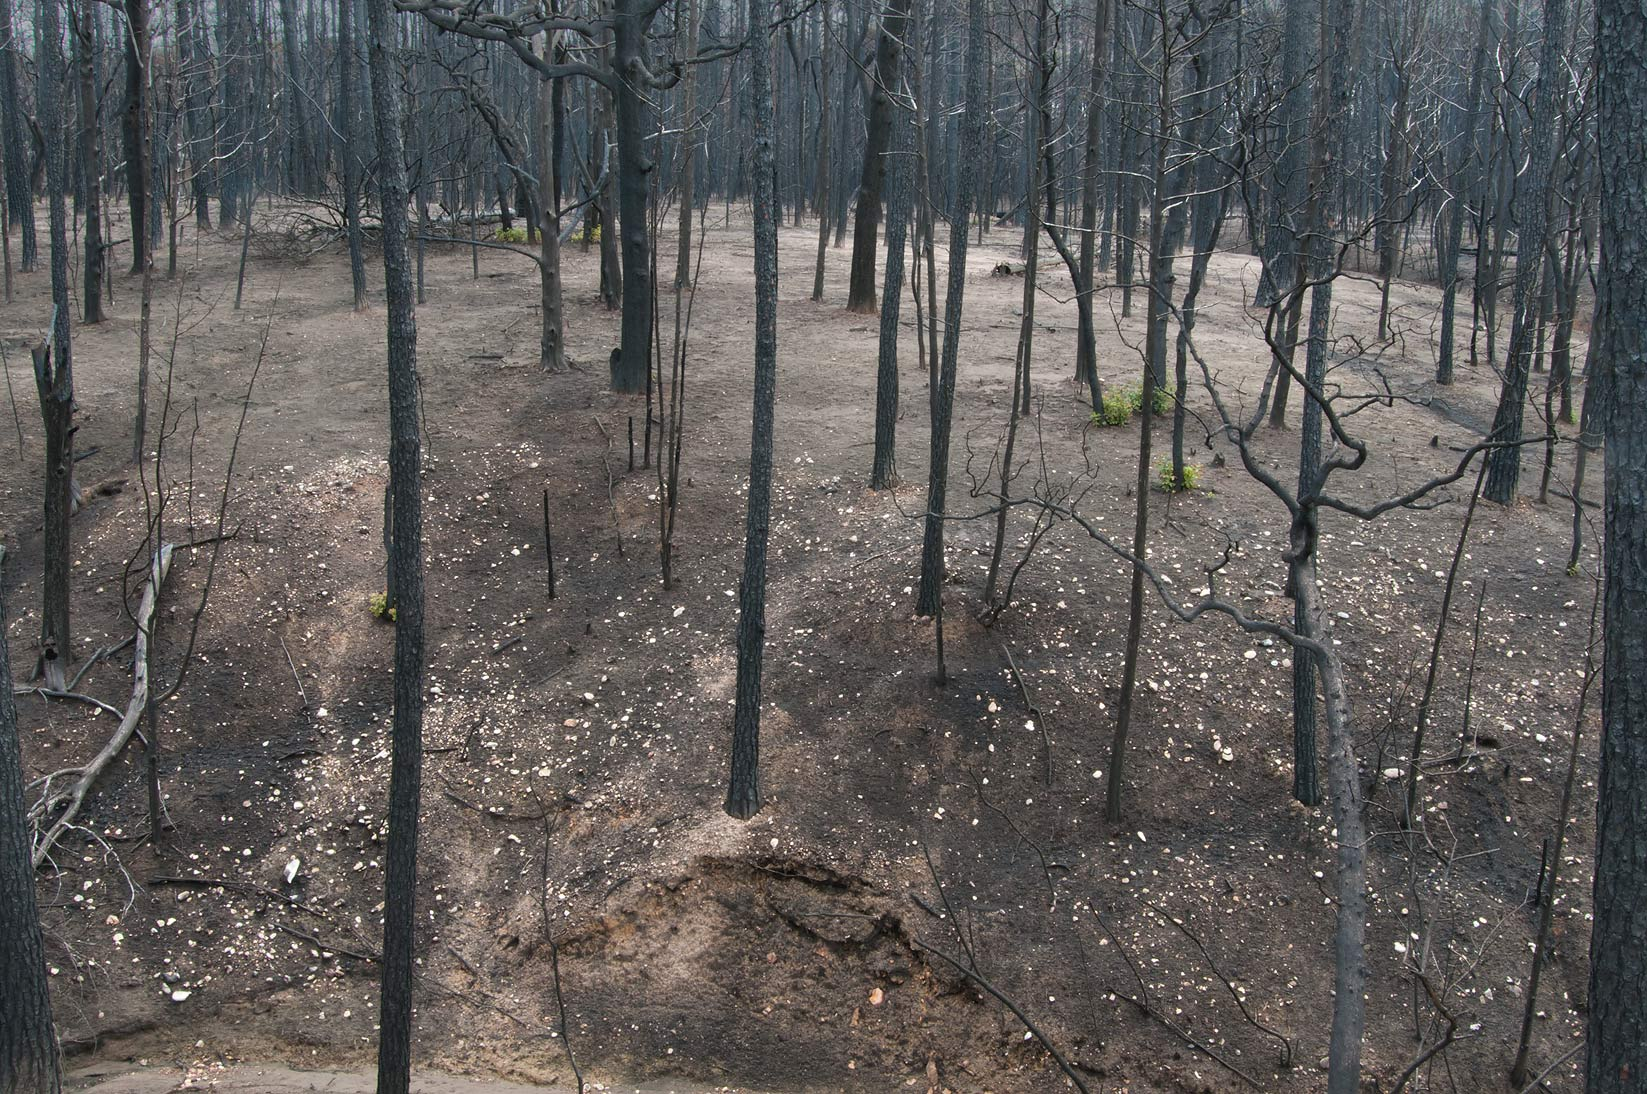 Burnt forest near Lost Pines Overlook cleaned by...in Bastrop State Park. Bastrop, Texas